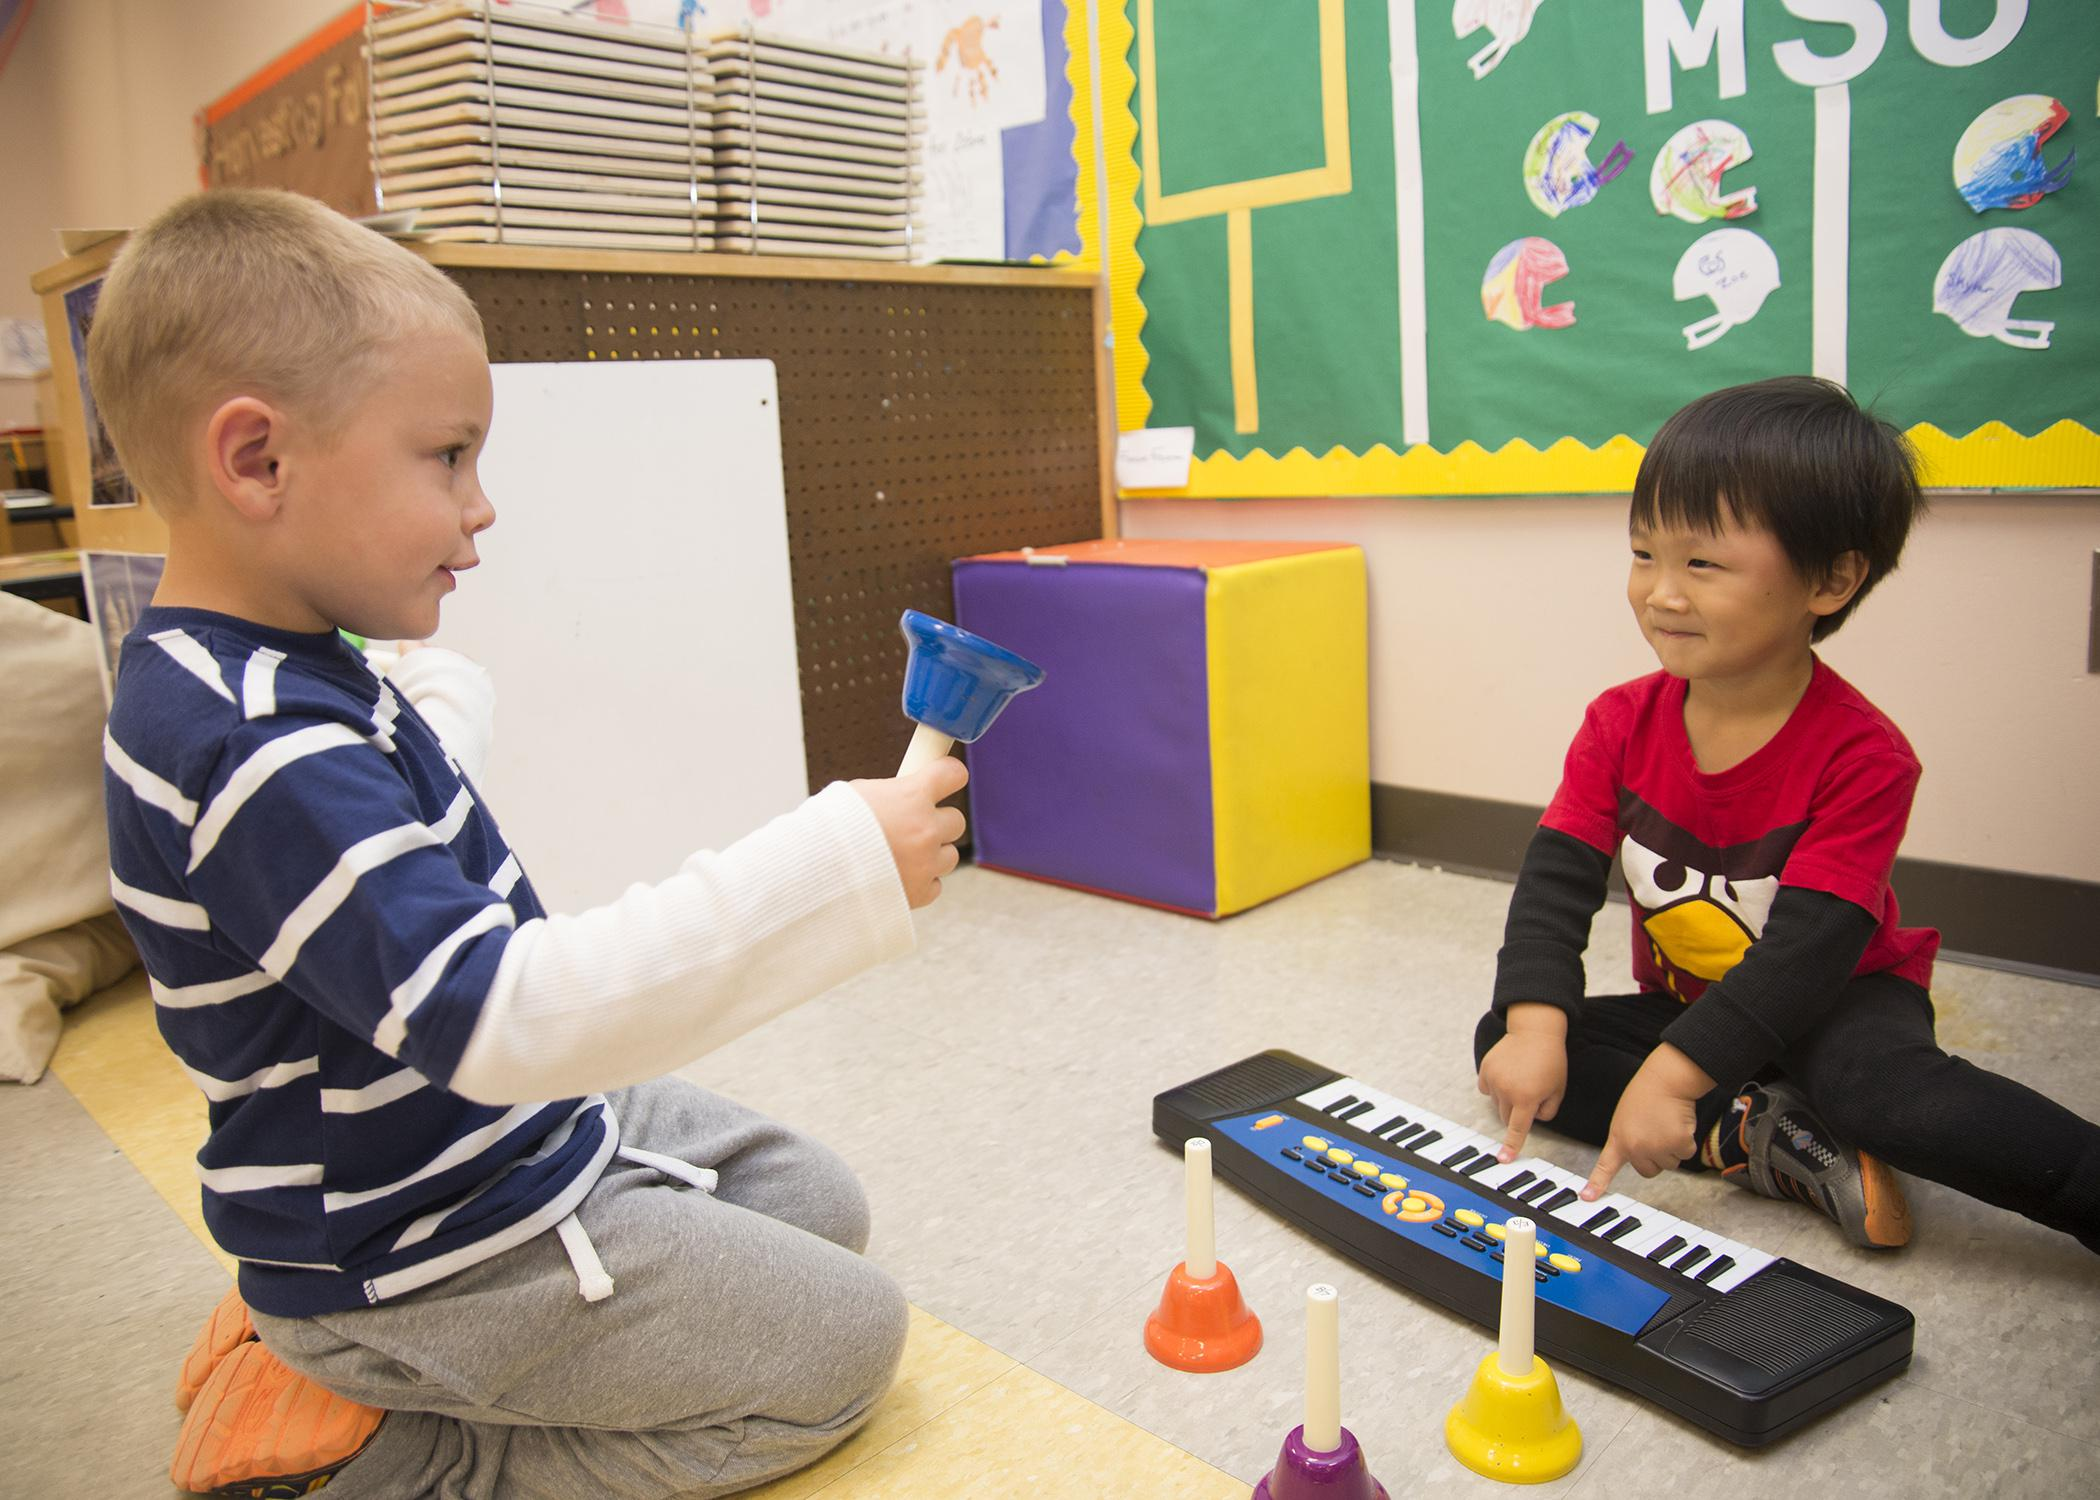 These two preschoolers play their first musical instruments in the Child Development and Family Studies Center at Mississippi State University. (School of Human Sciences file photo/Alicia Barnes)